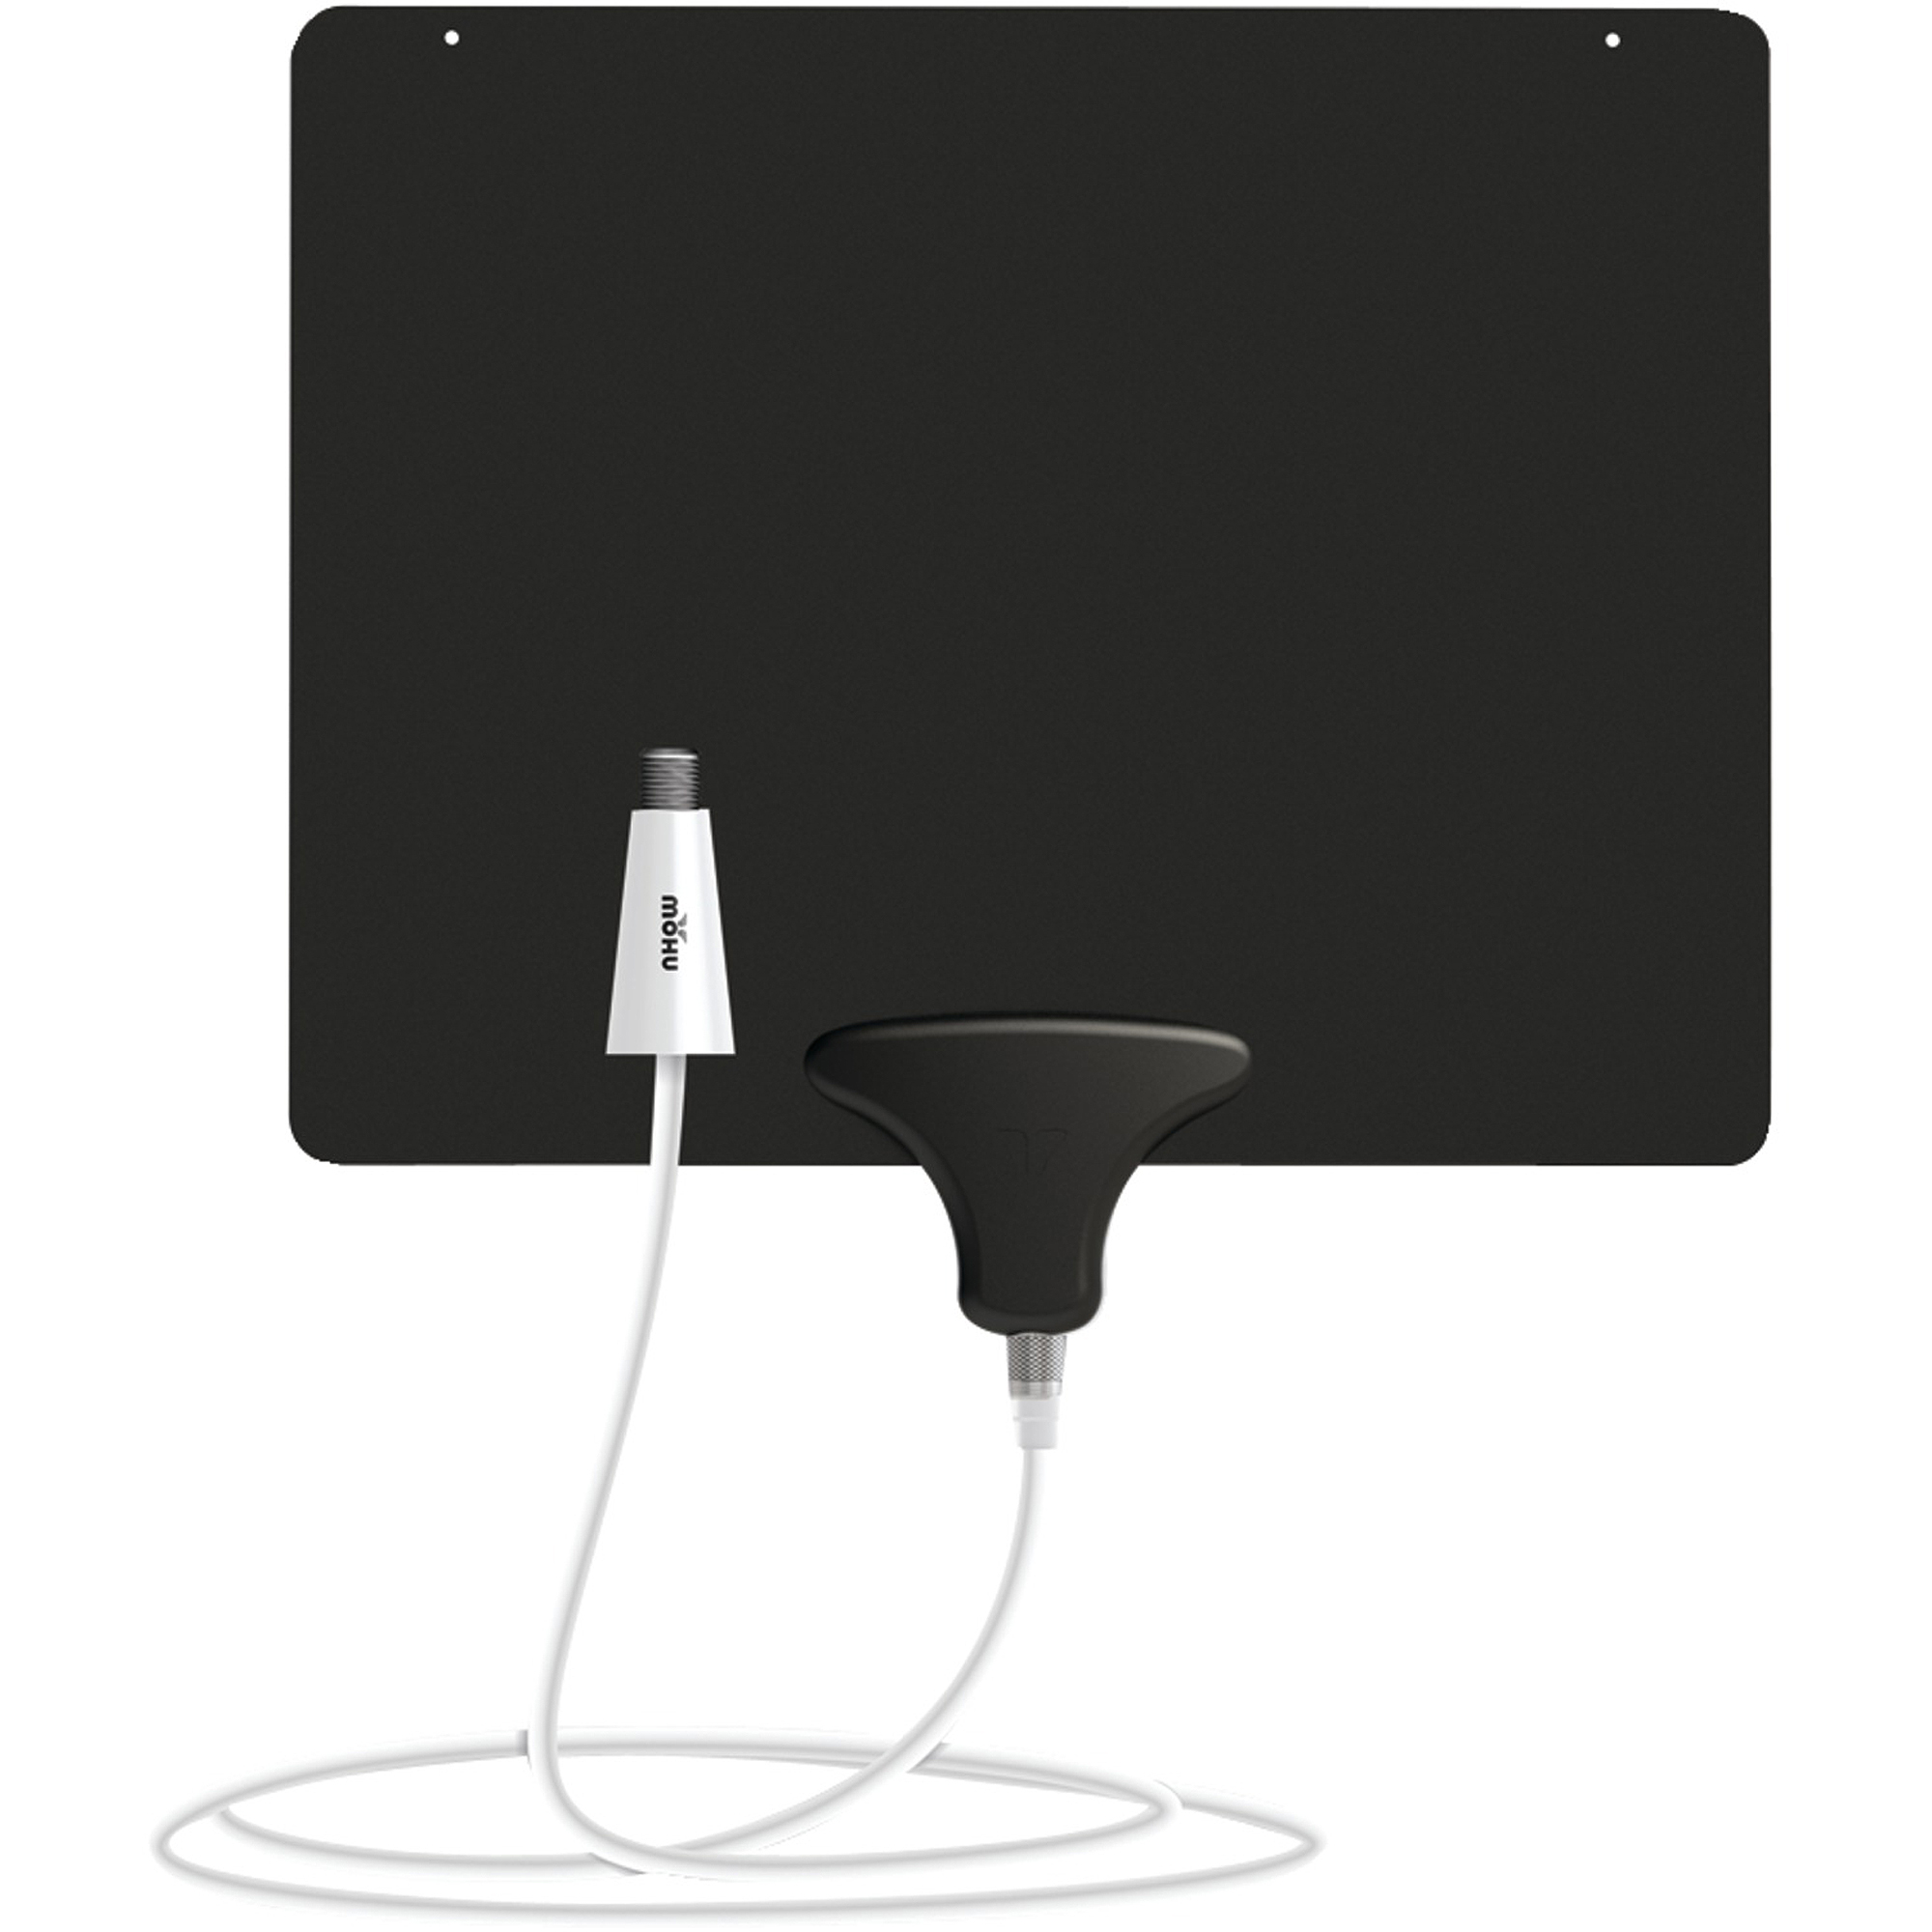 Mohu Leaf 50 Flat 50-Mile Indoor HDTV Antenna